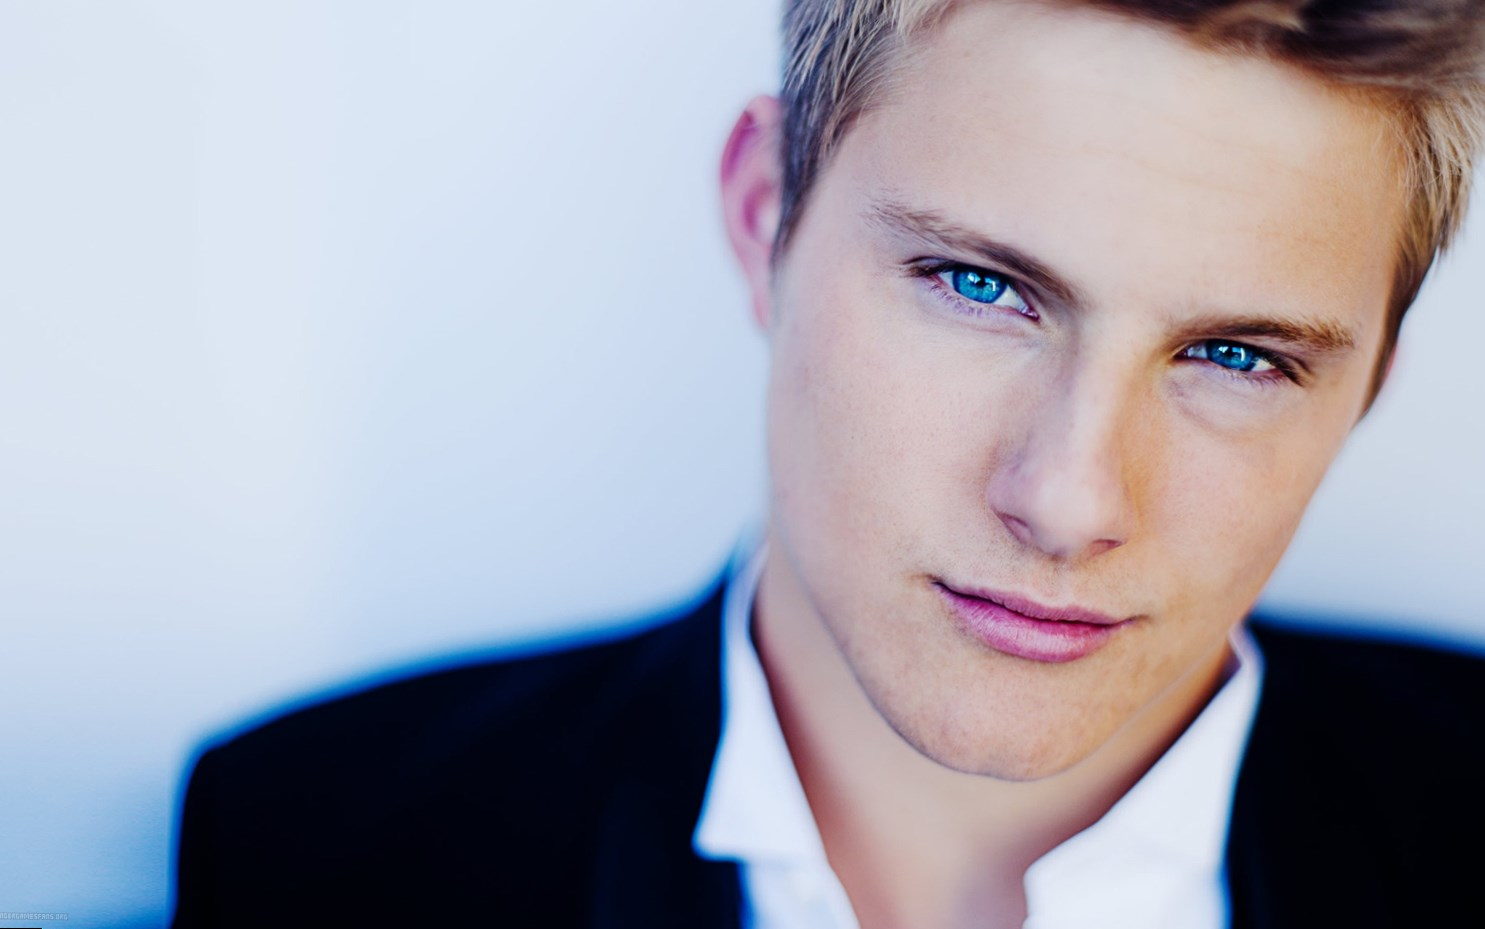 Forum on this topic: Kim Mullen, alexander-ludwig/